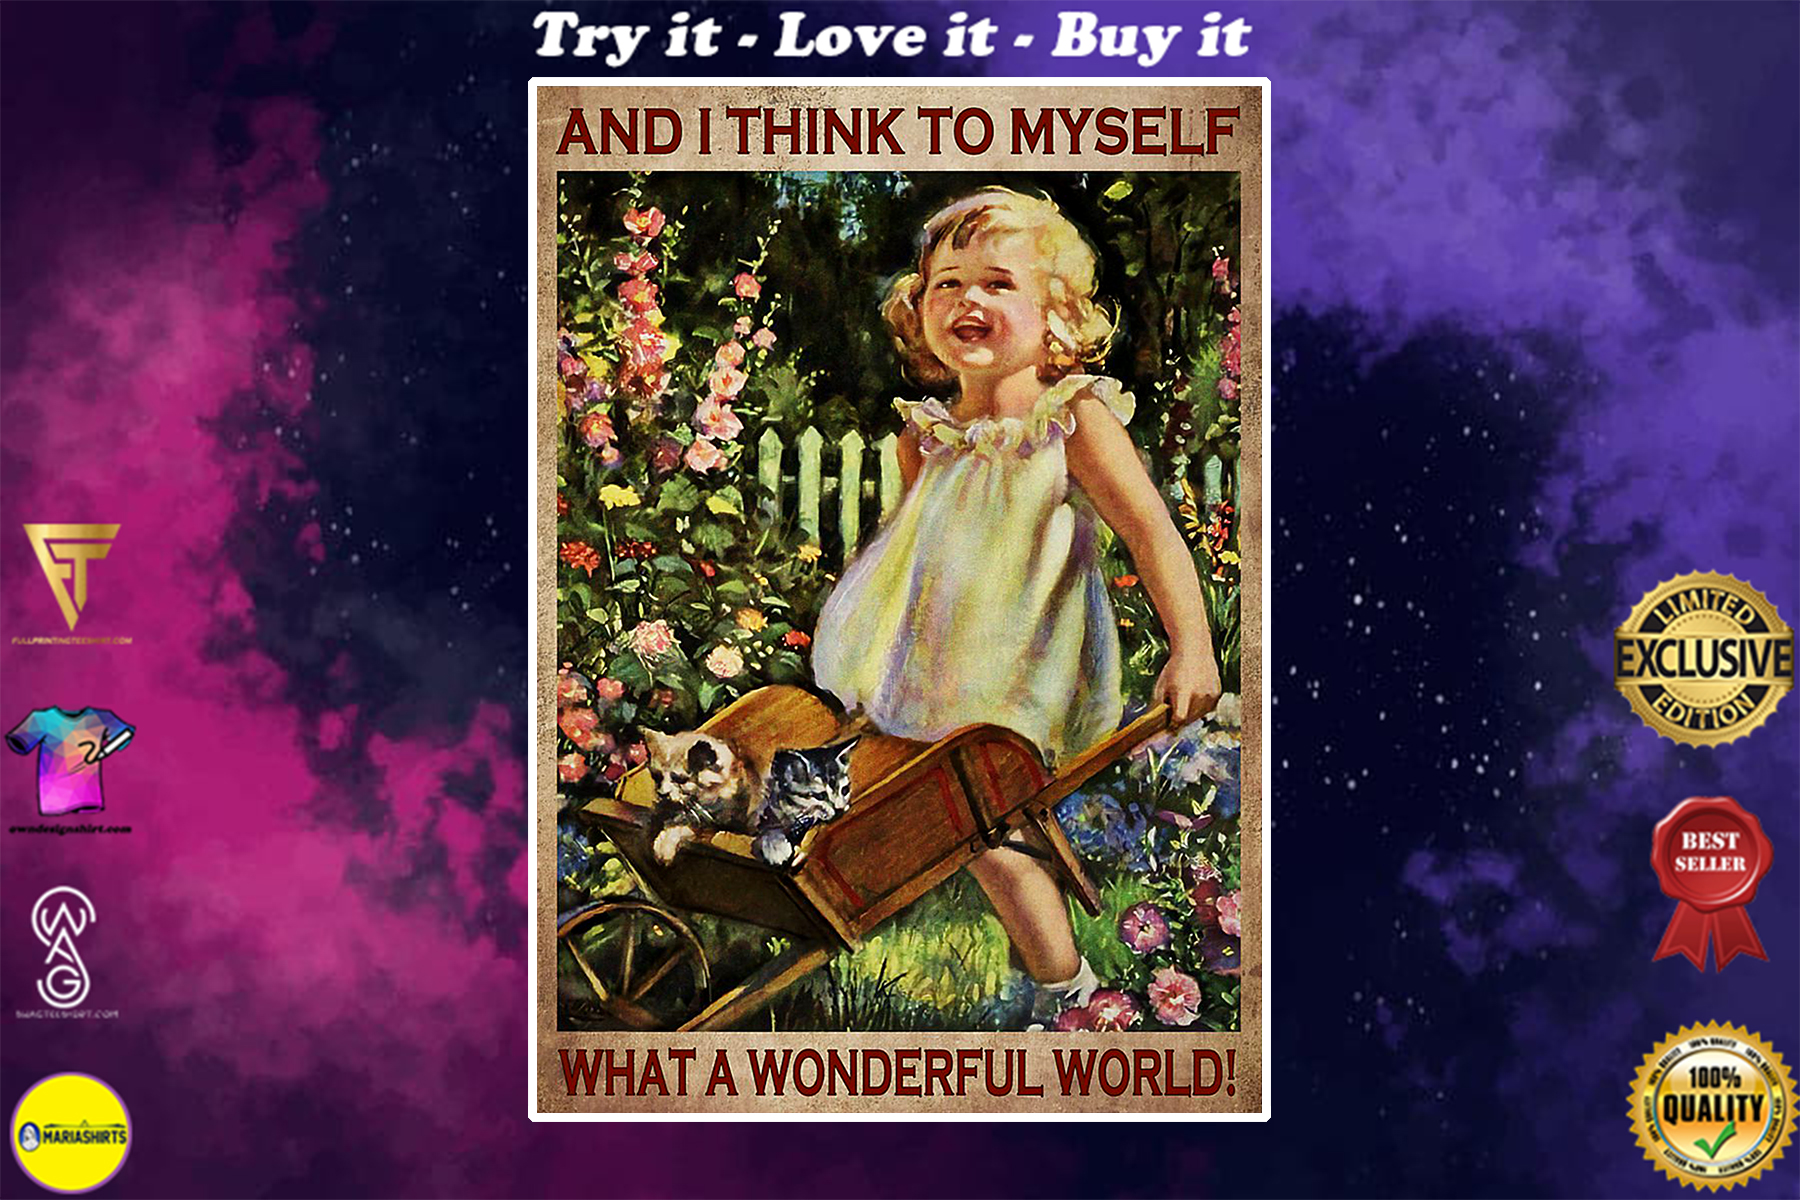 vintage garden girl and i think to myself what a wonderful world poster